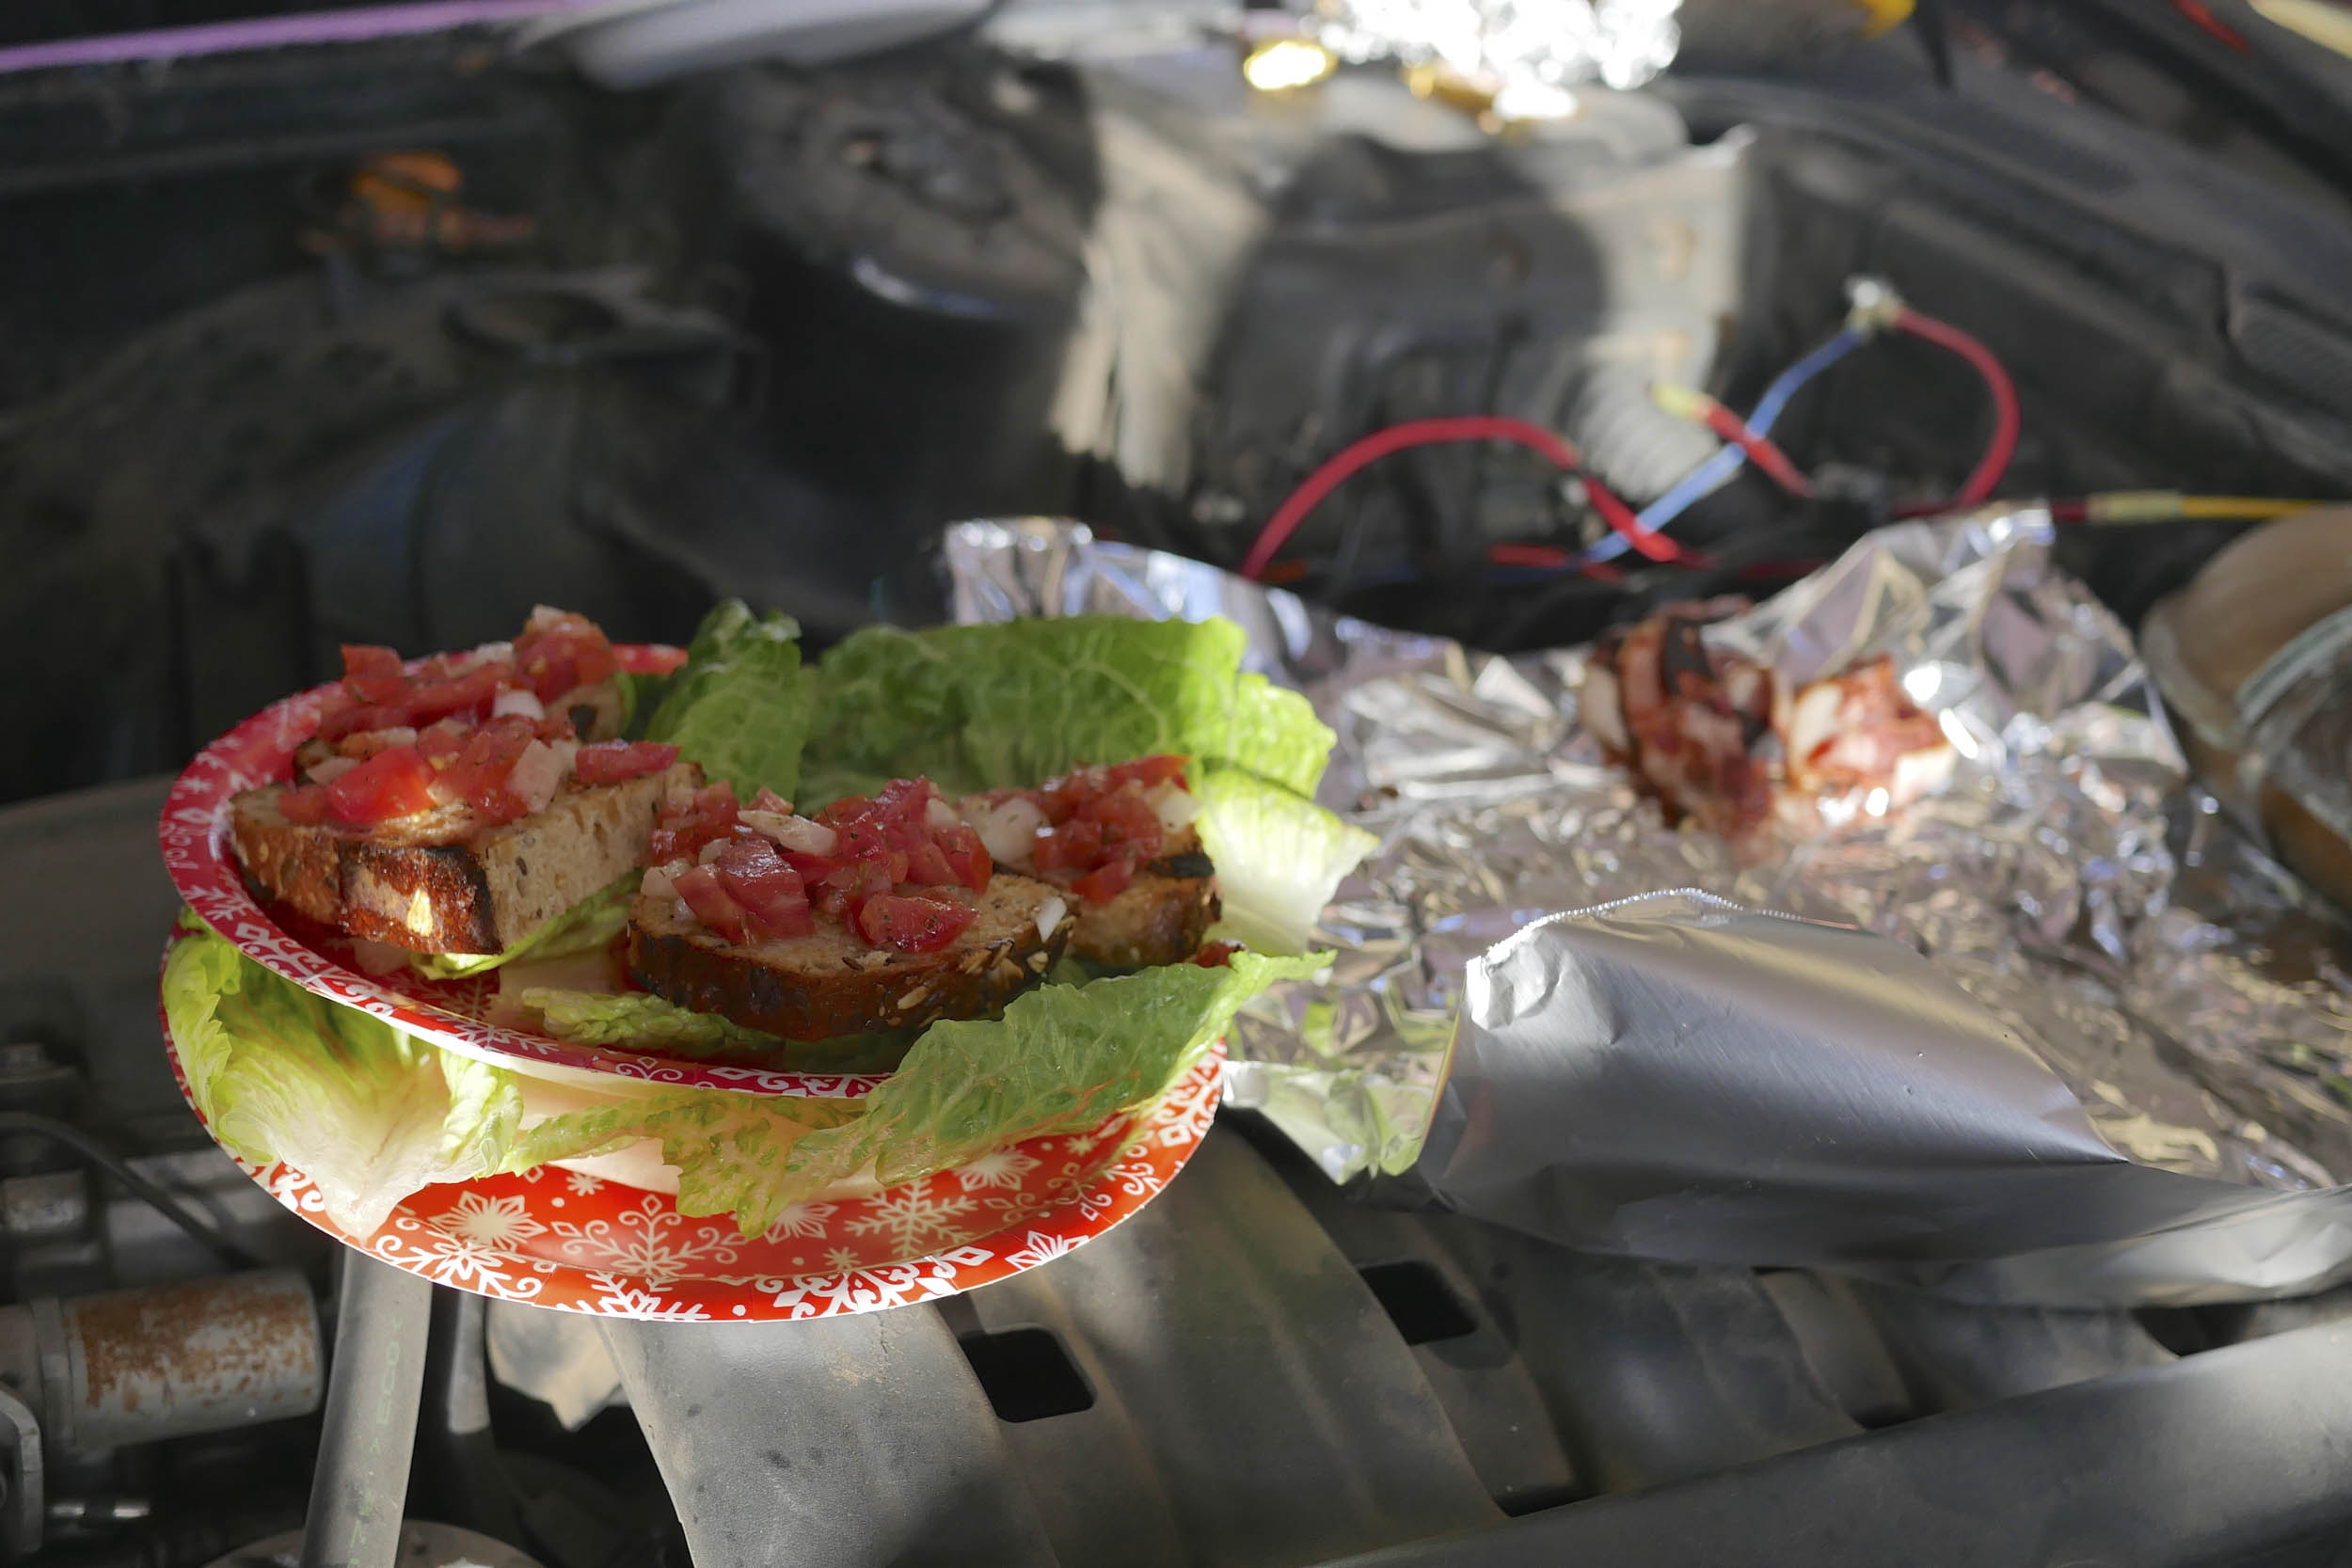 food cooked on a car engine